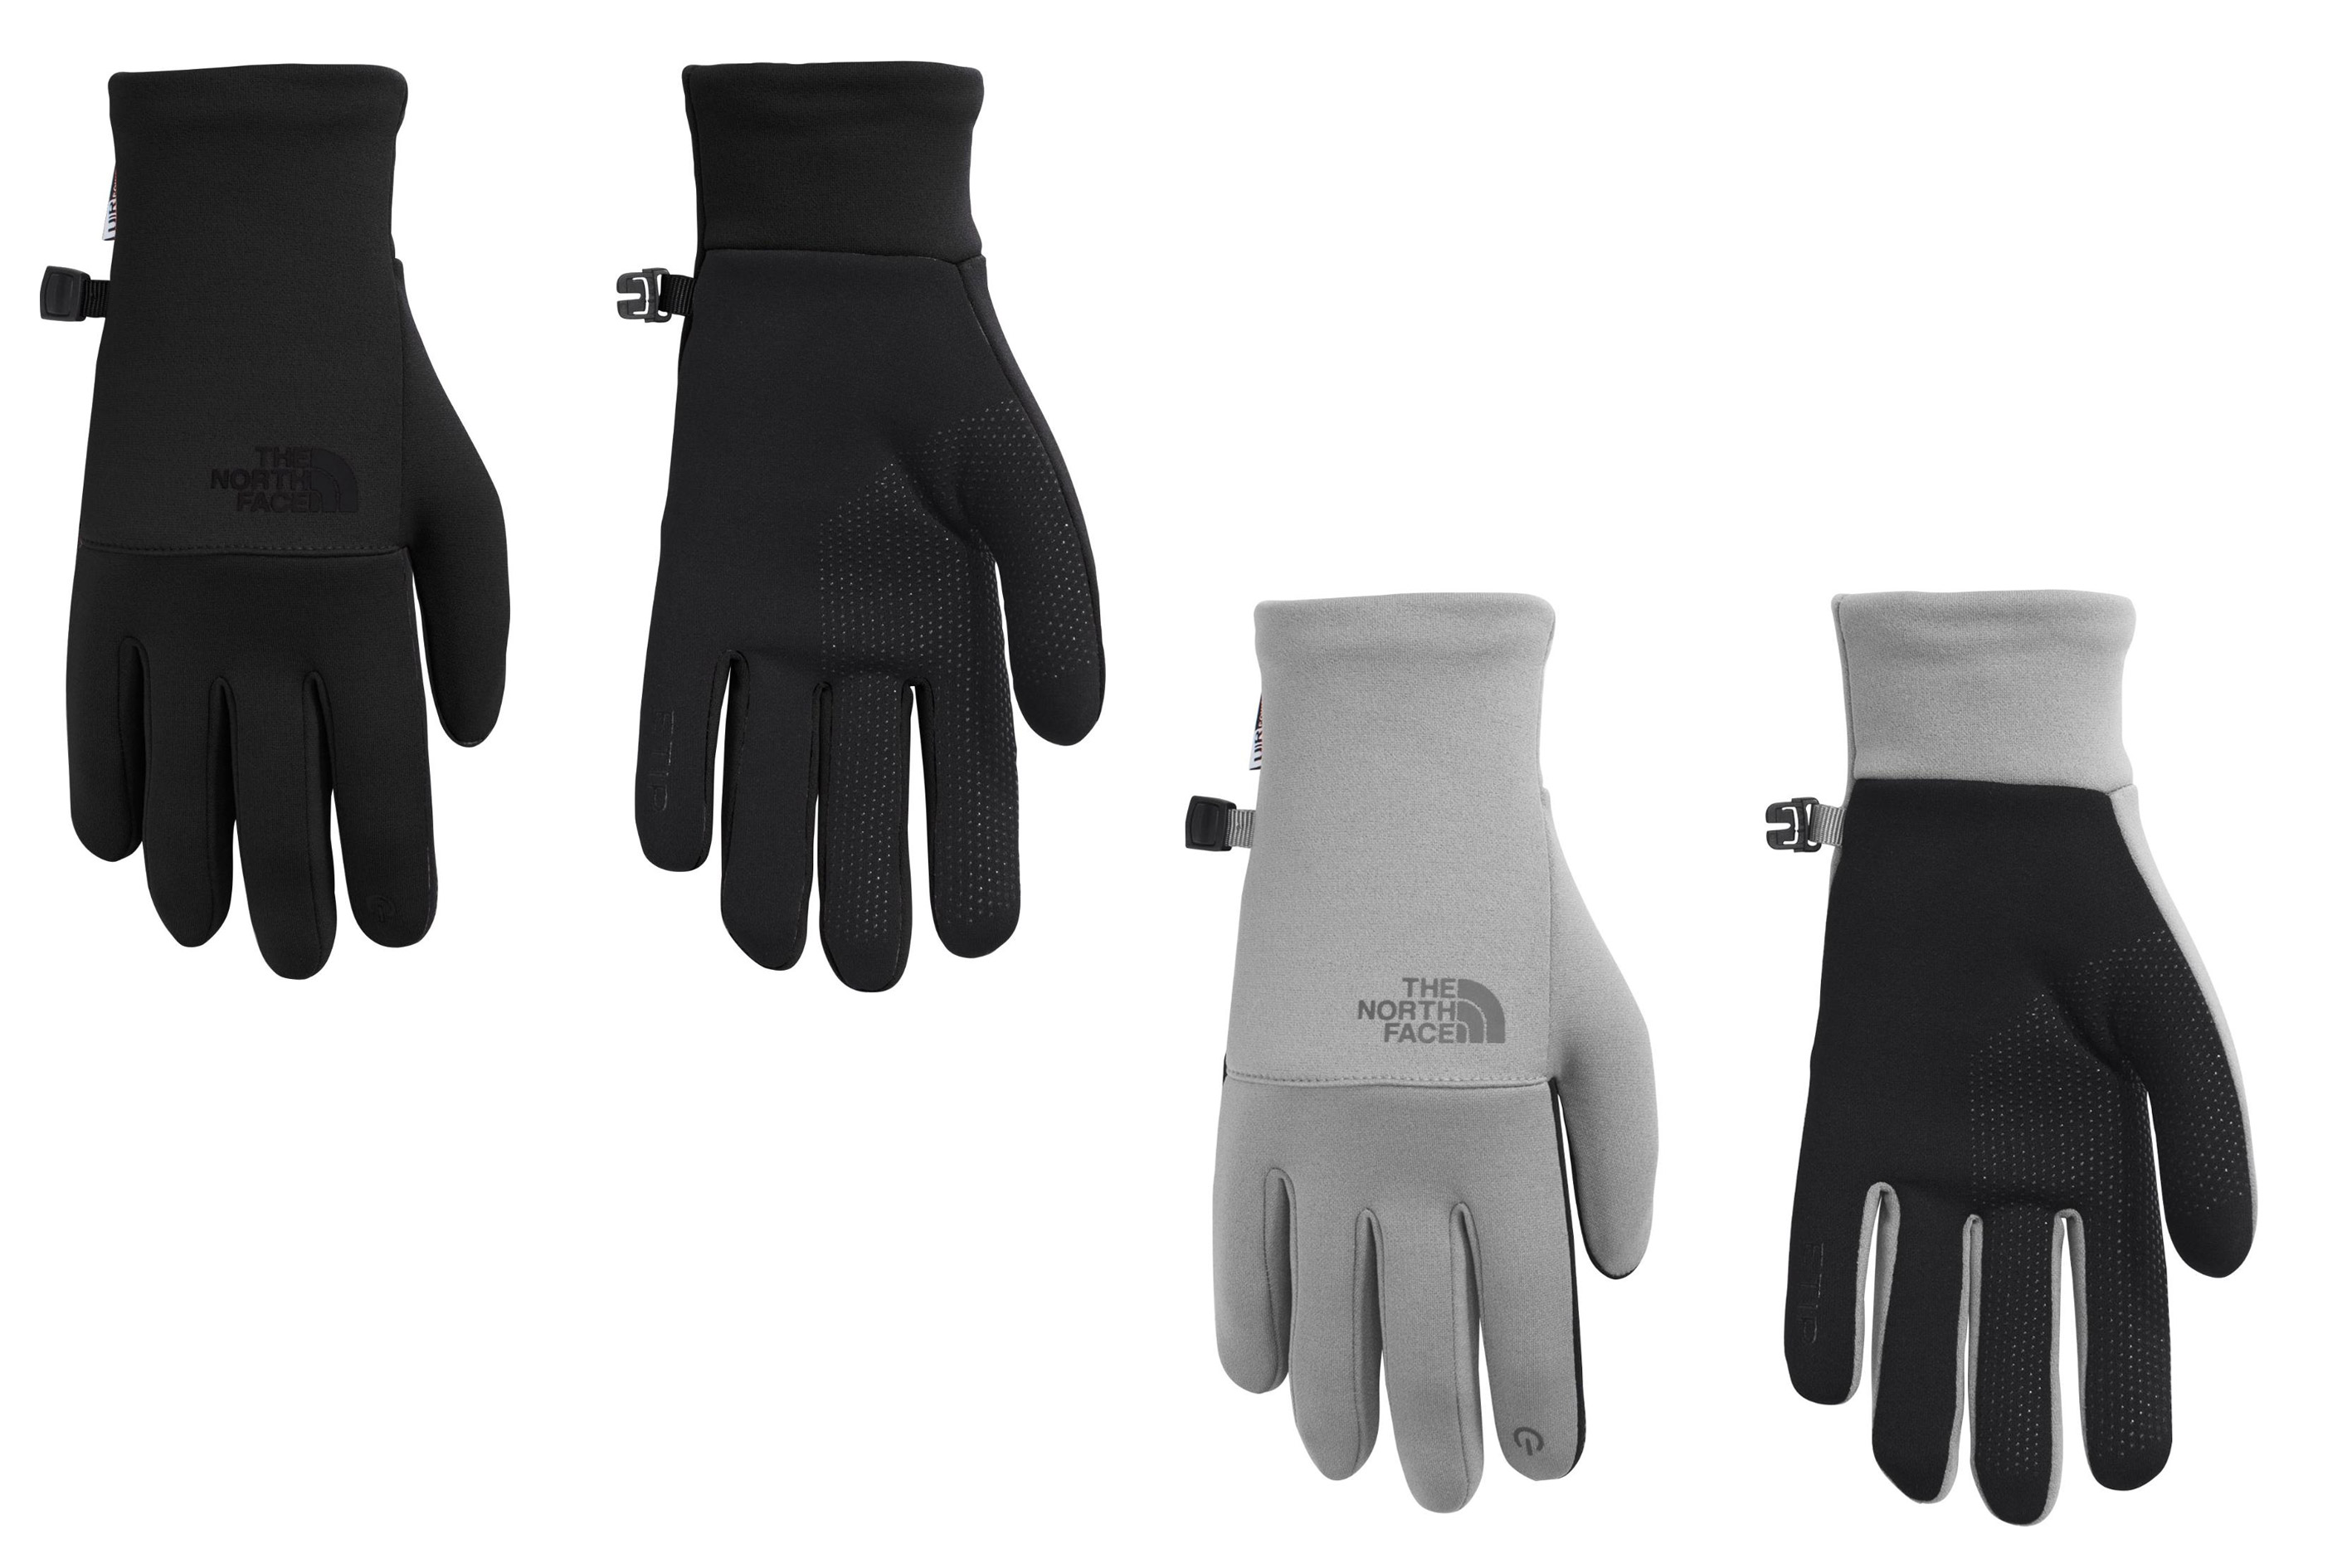 the north face etip recycled glove